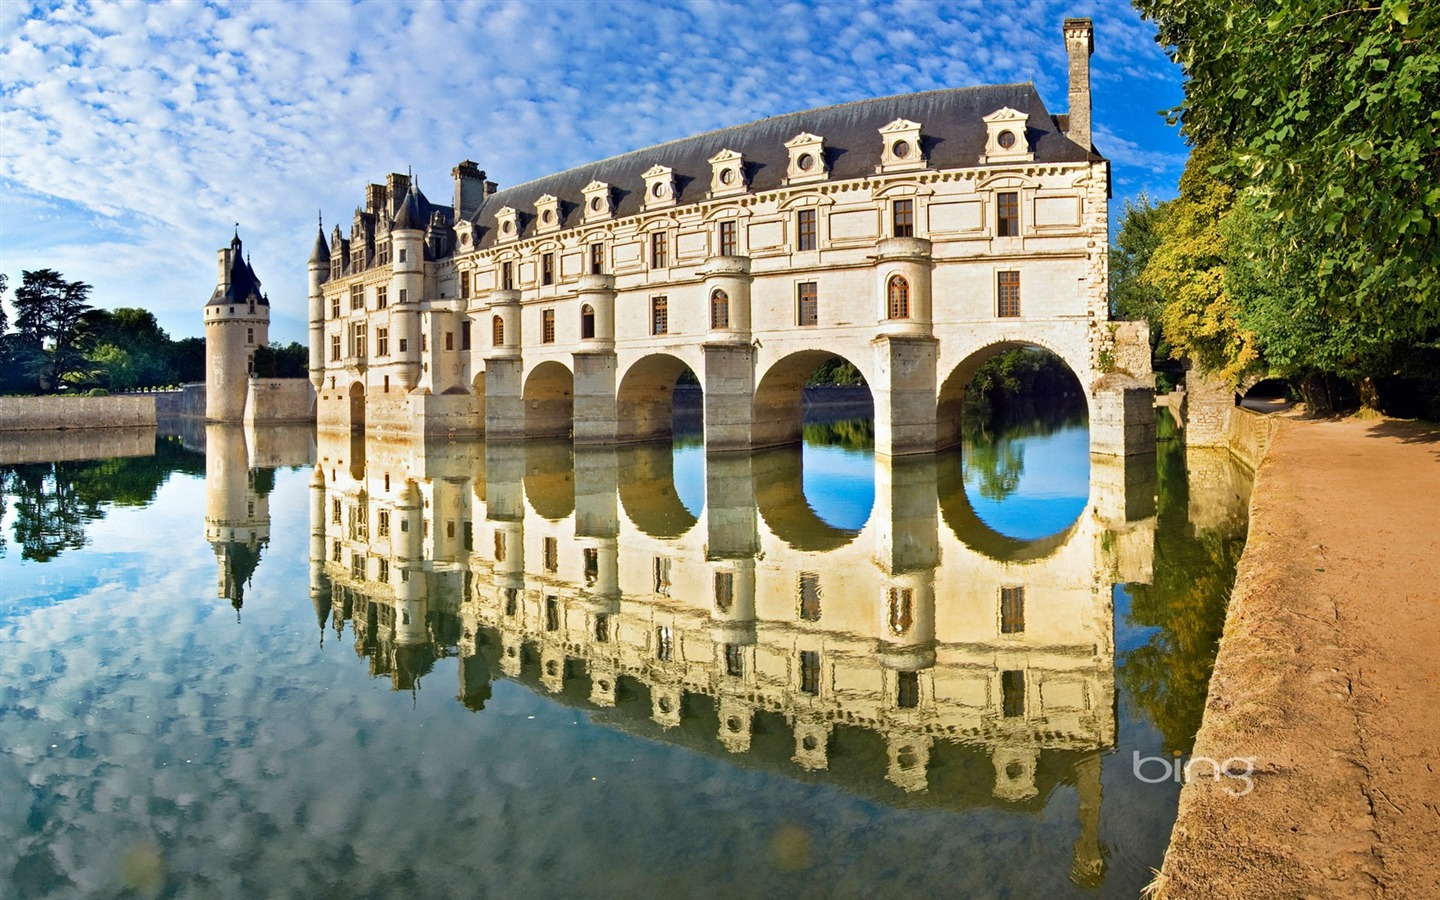 Loire Valley homes of agricultural water castle wallpaper Cable 1440x900